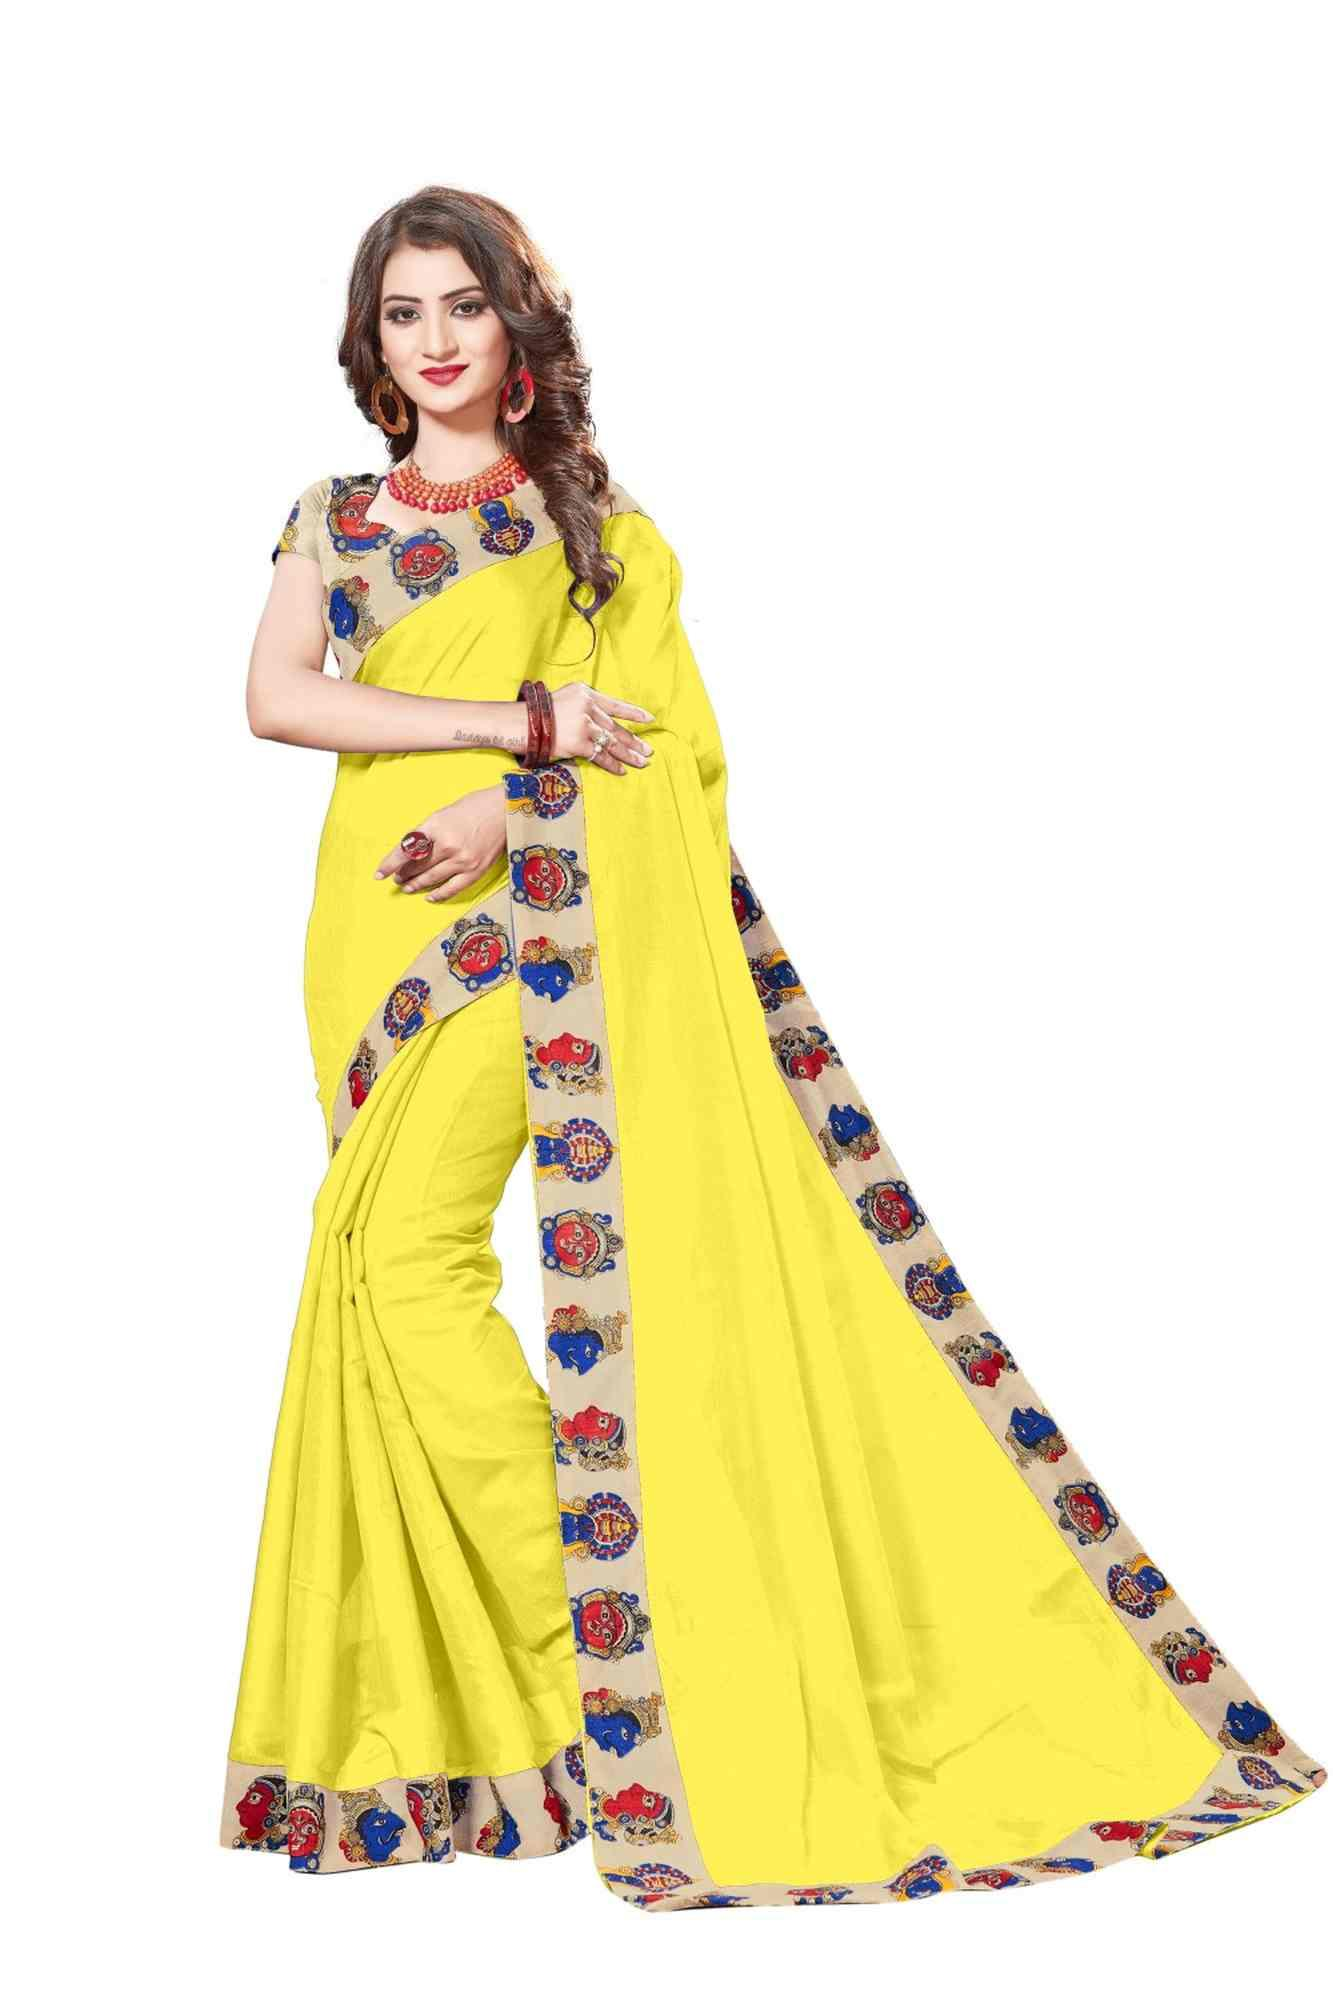 Queen's Yellow Gorgeous Chanderi Lace Border Regular Saree